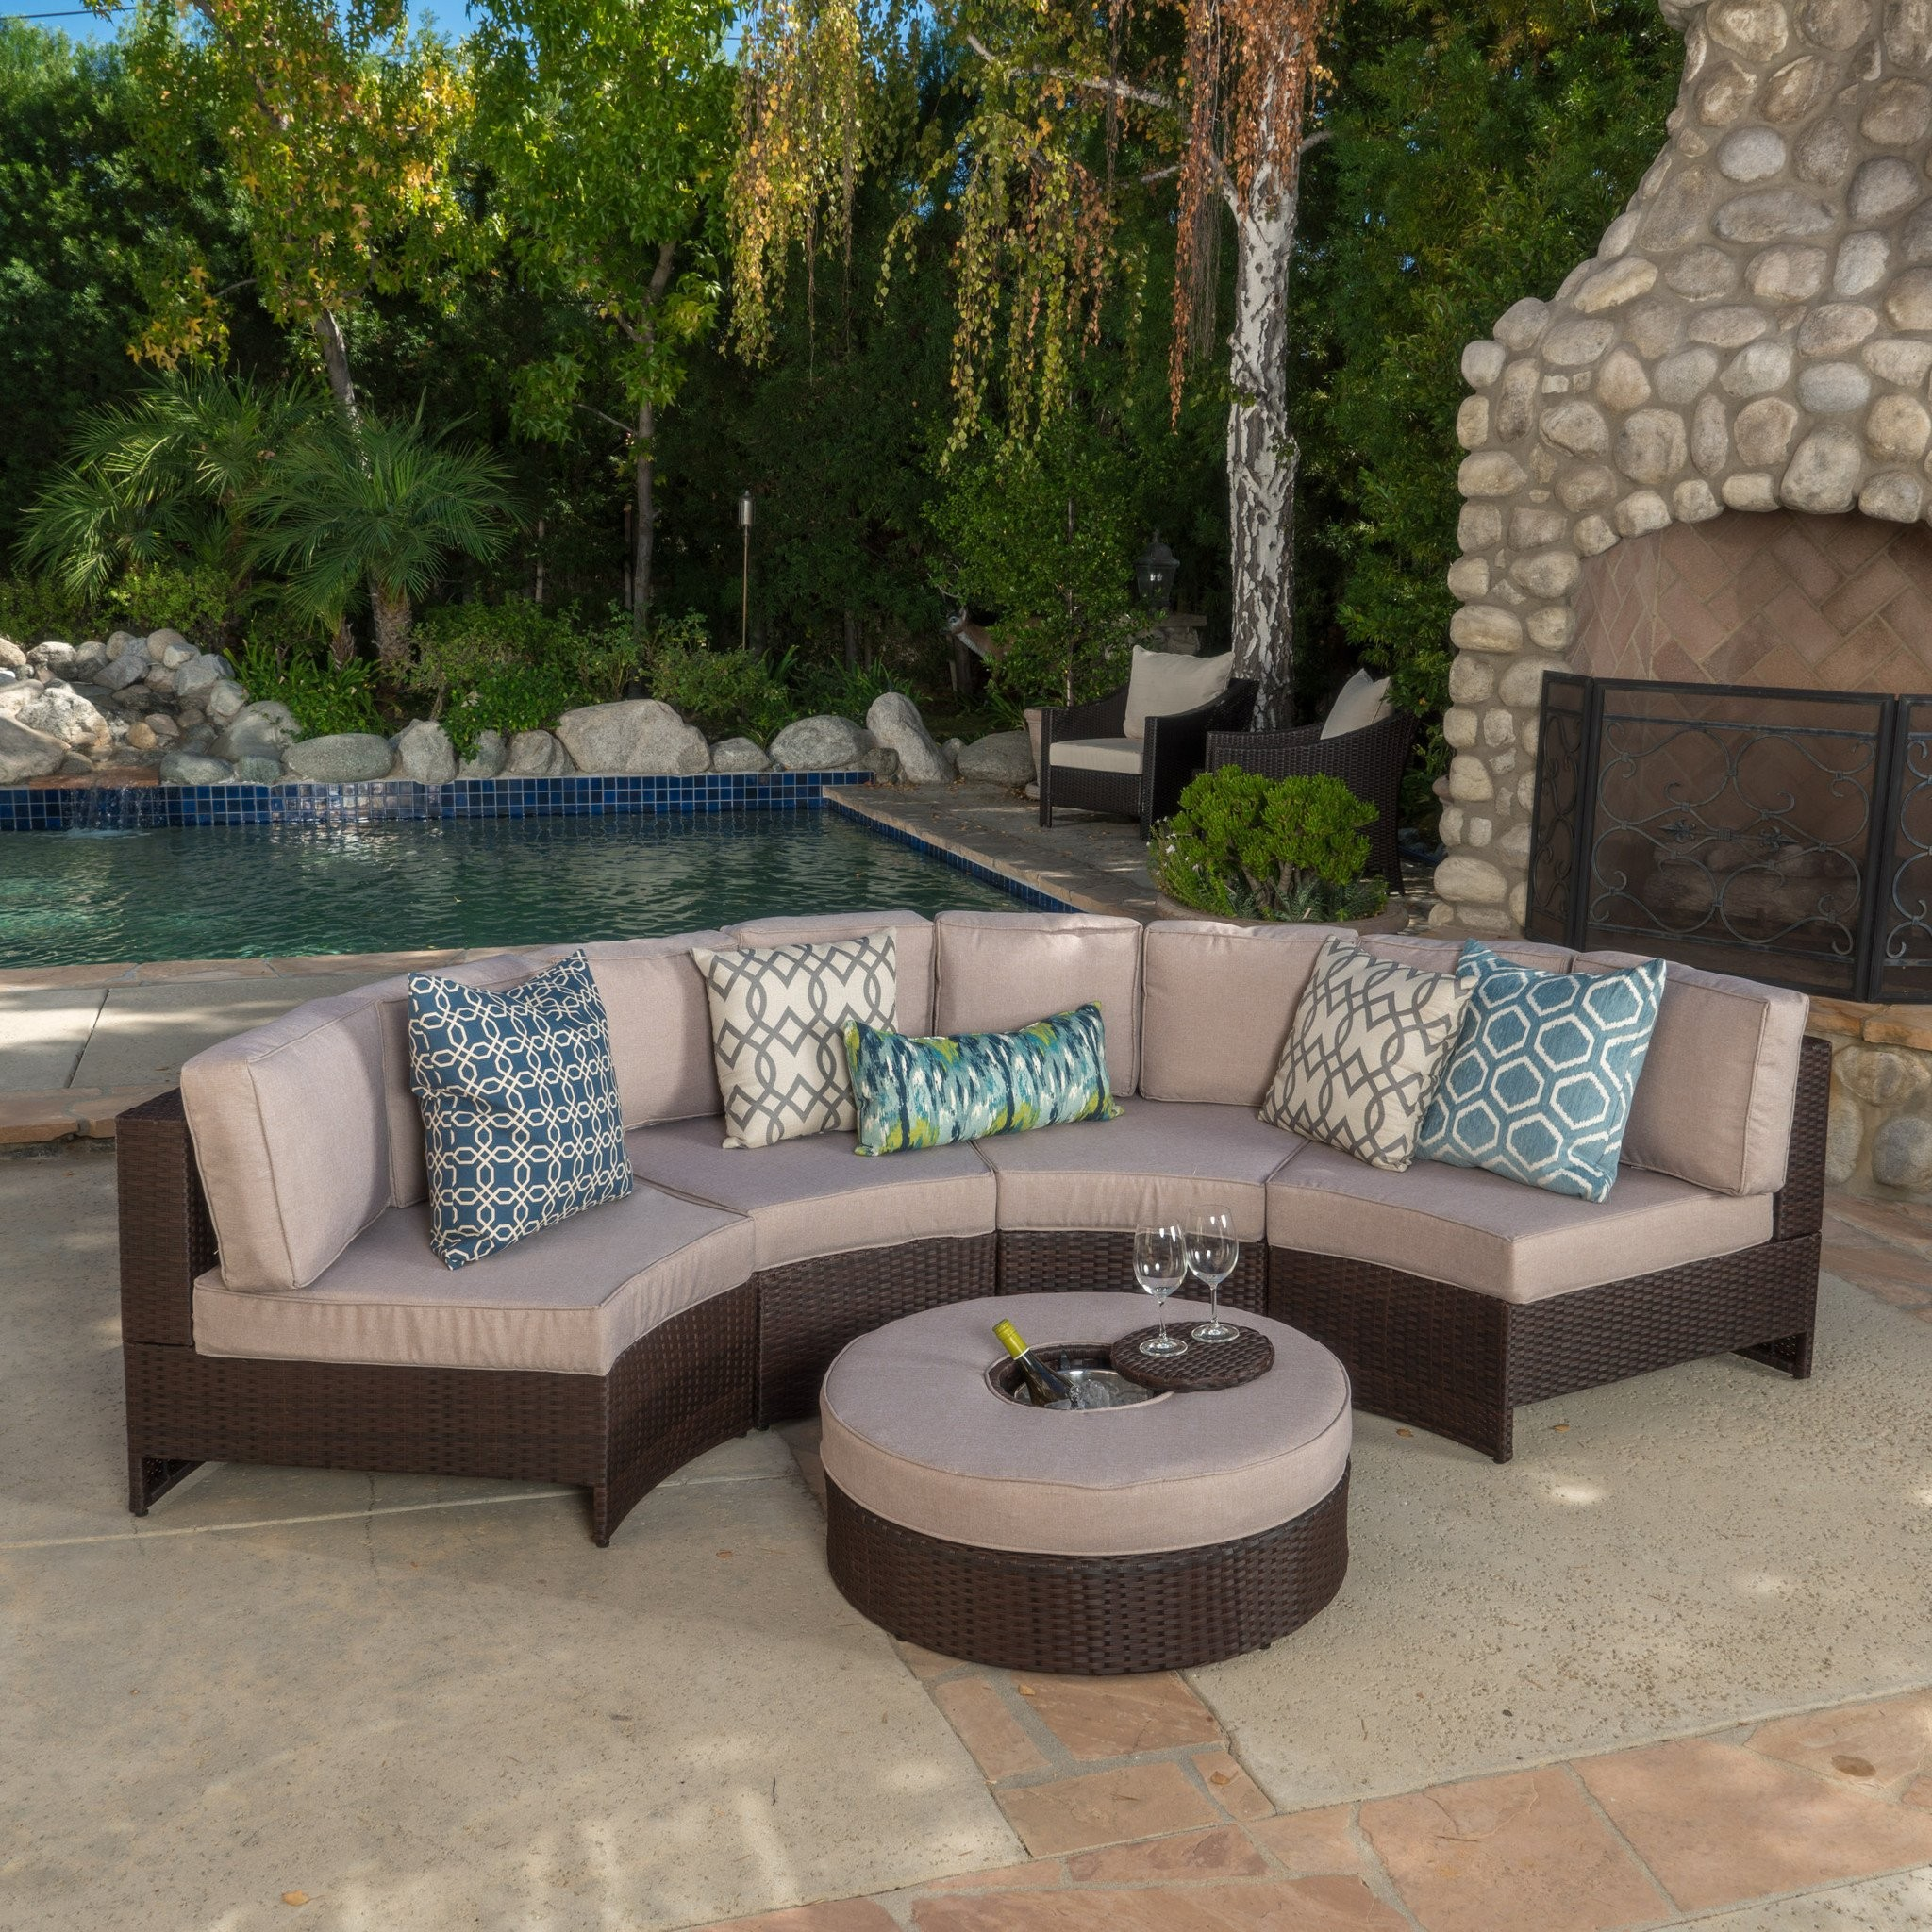 Riviera 5pc Outdoor Sectional Sofa Set w/ Ice Buck...